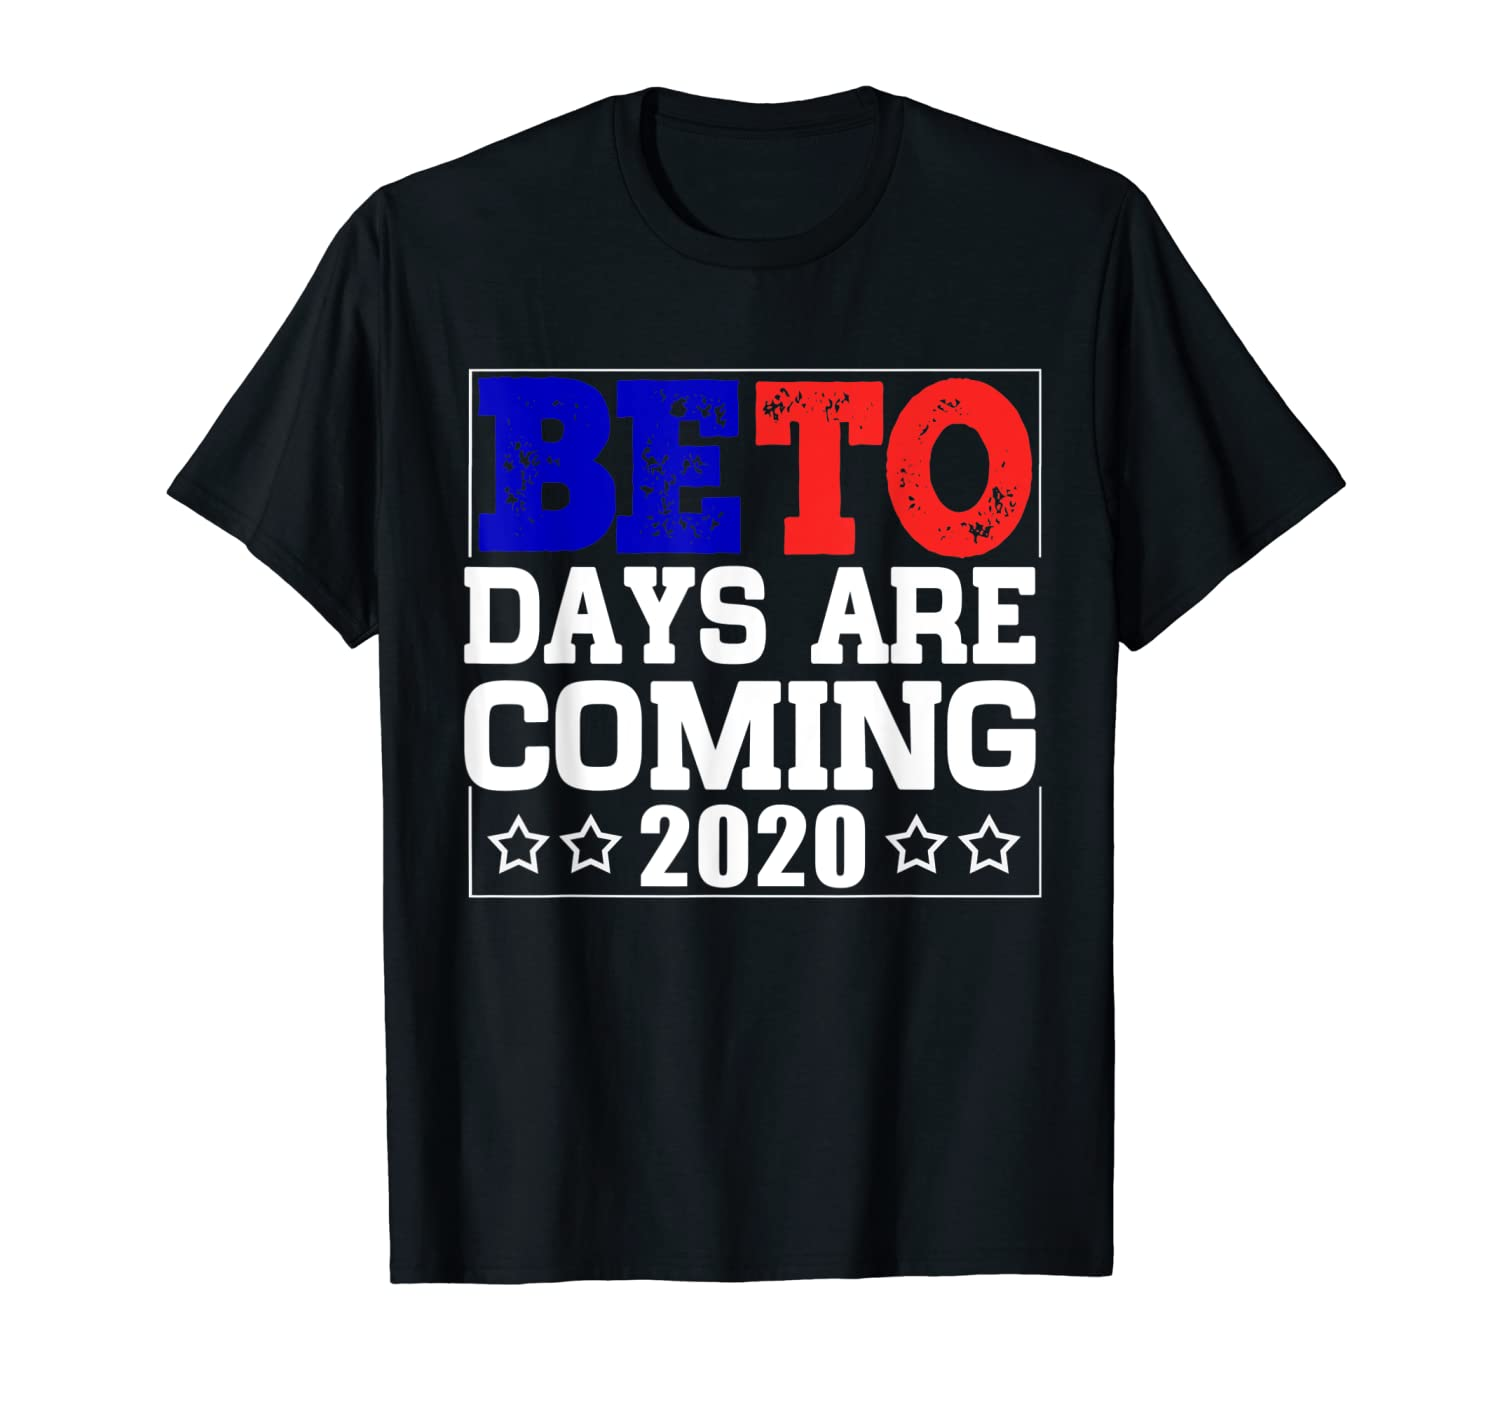 Amazon com: Beto Days Are Coming T-Shirt Beto O'Rourke 2020 USA